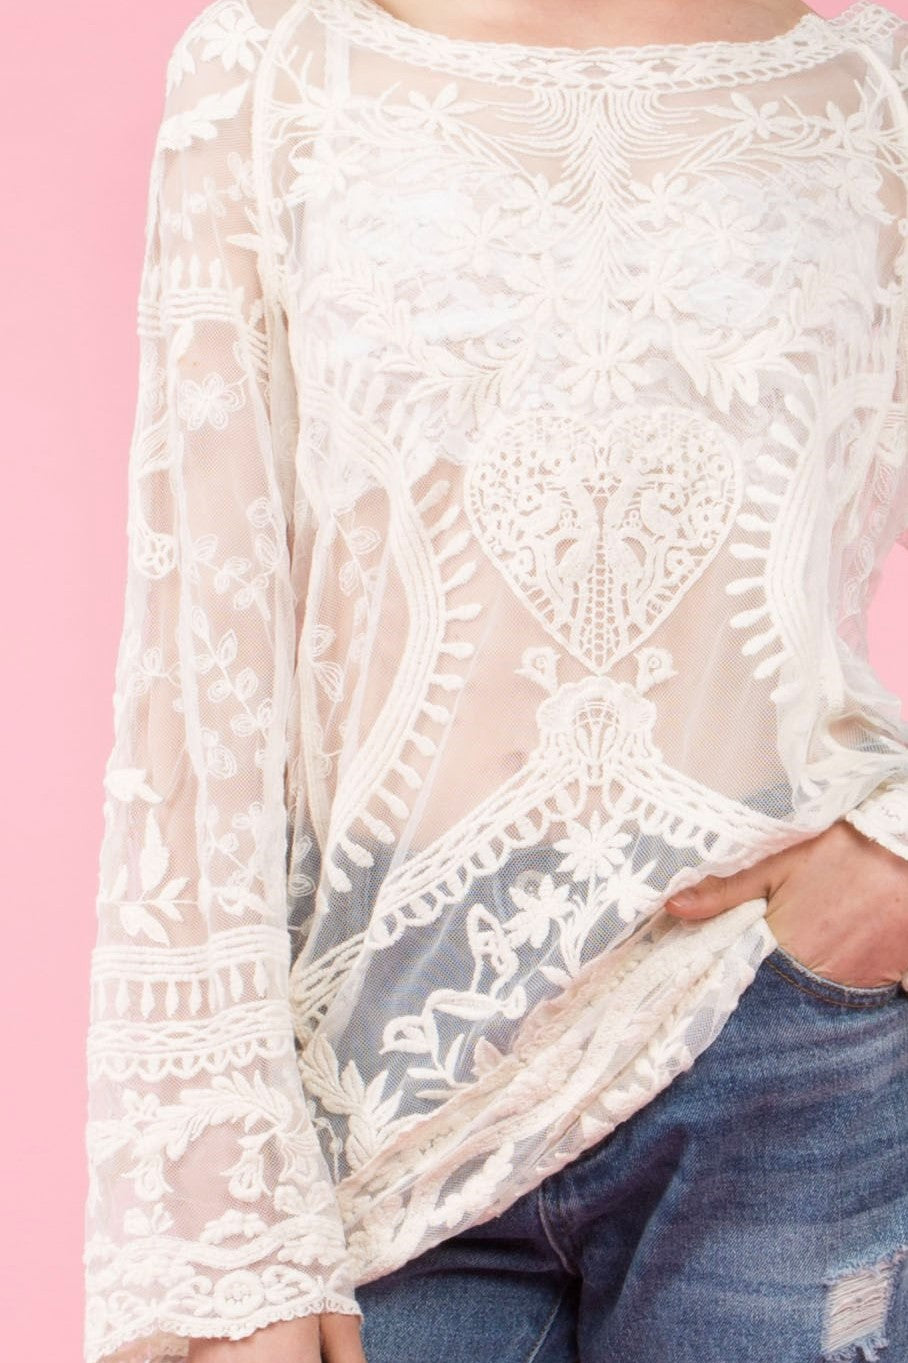 Detail view natural colored lace tunic top with wide boat neckline